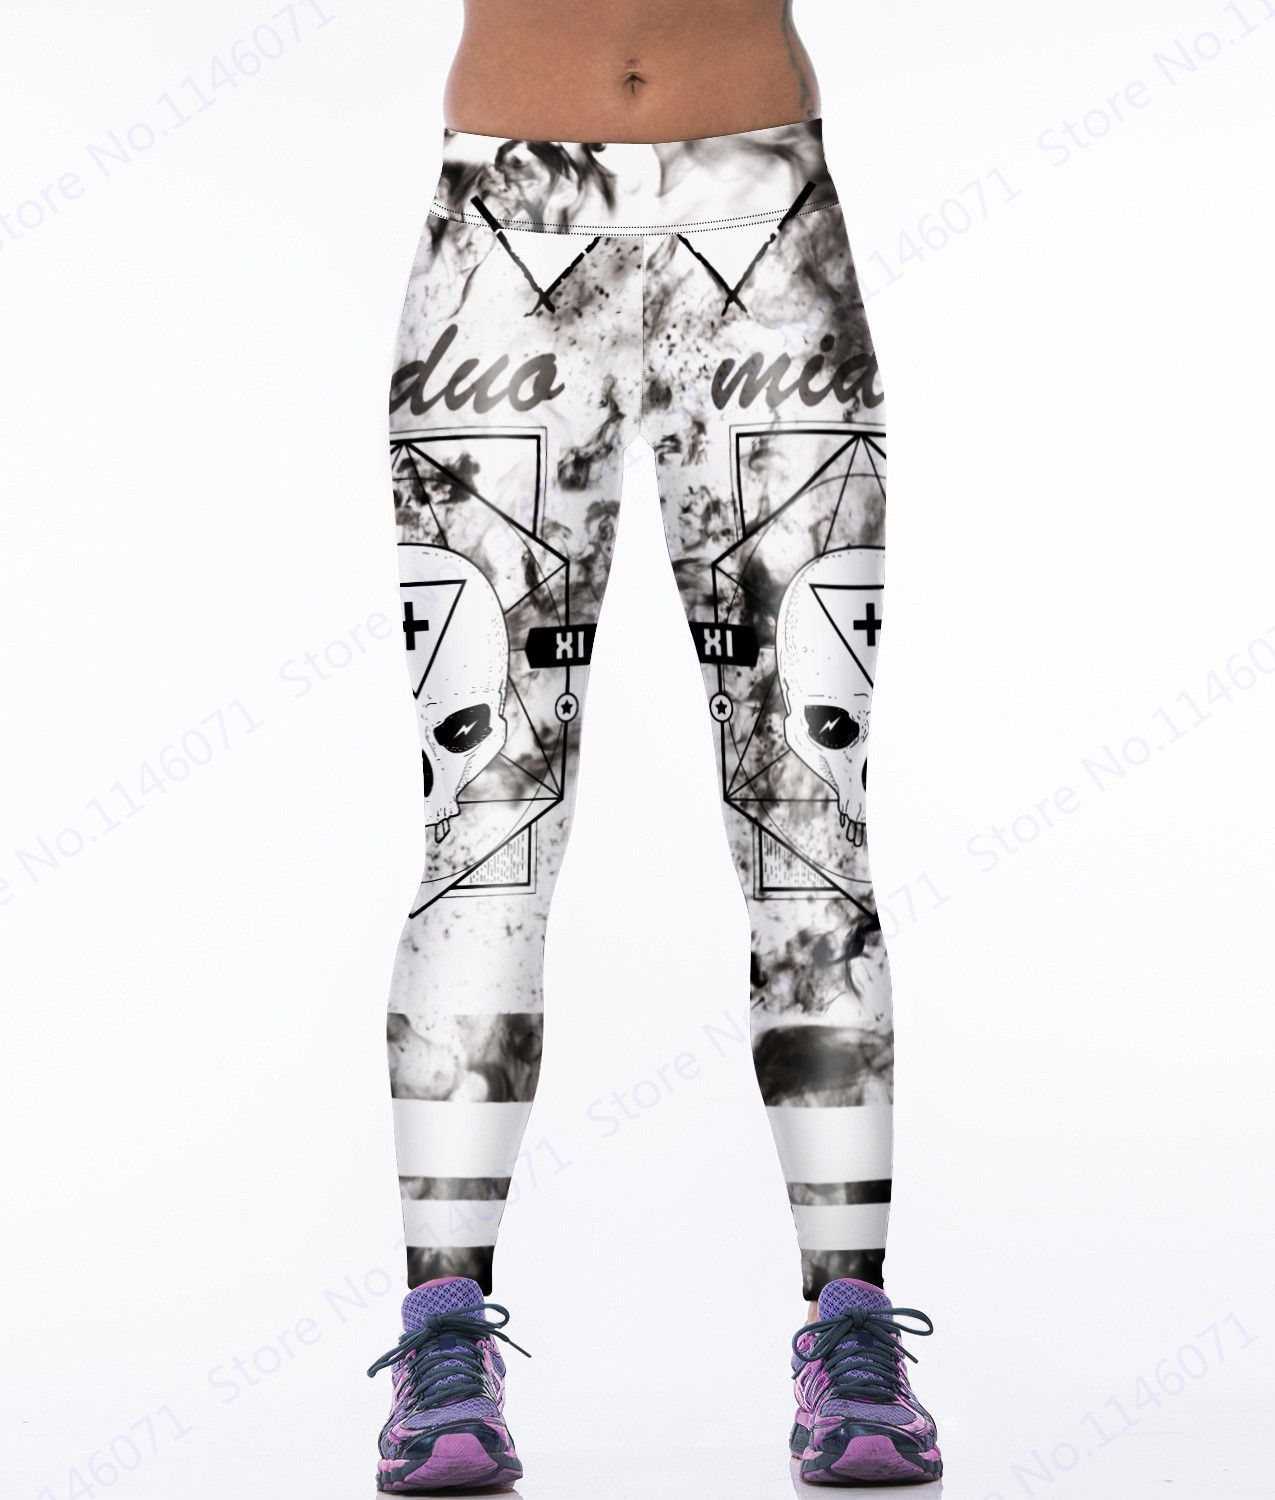 aad0351f214e22 Brown Leopard Skeleton Sports Compression Tight Vintage Flowers Skull Yoga  Pants Ladies Green Fitness Leggings White Gym Tights-in Yoga Pants from  Sports ...